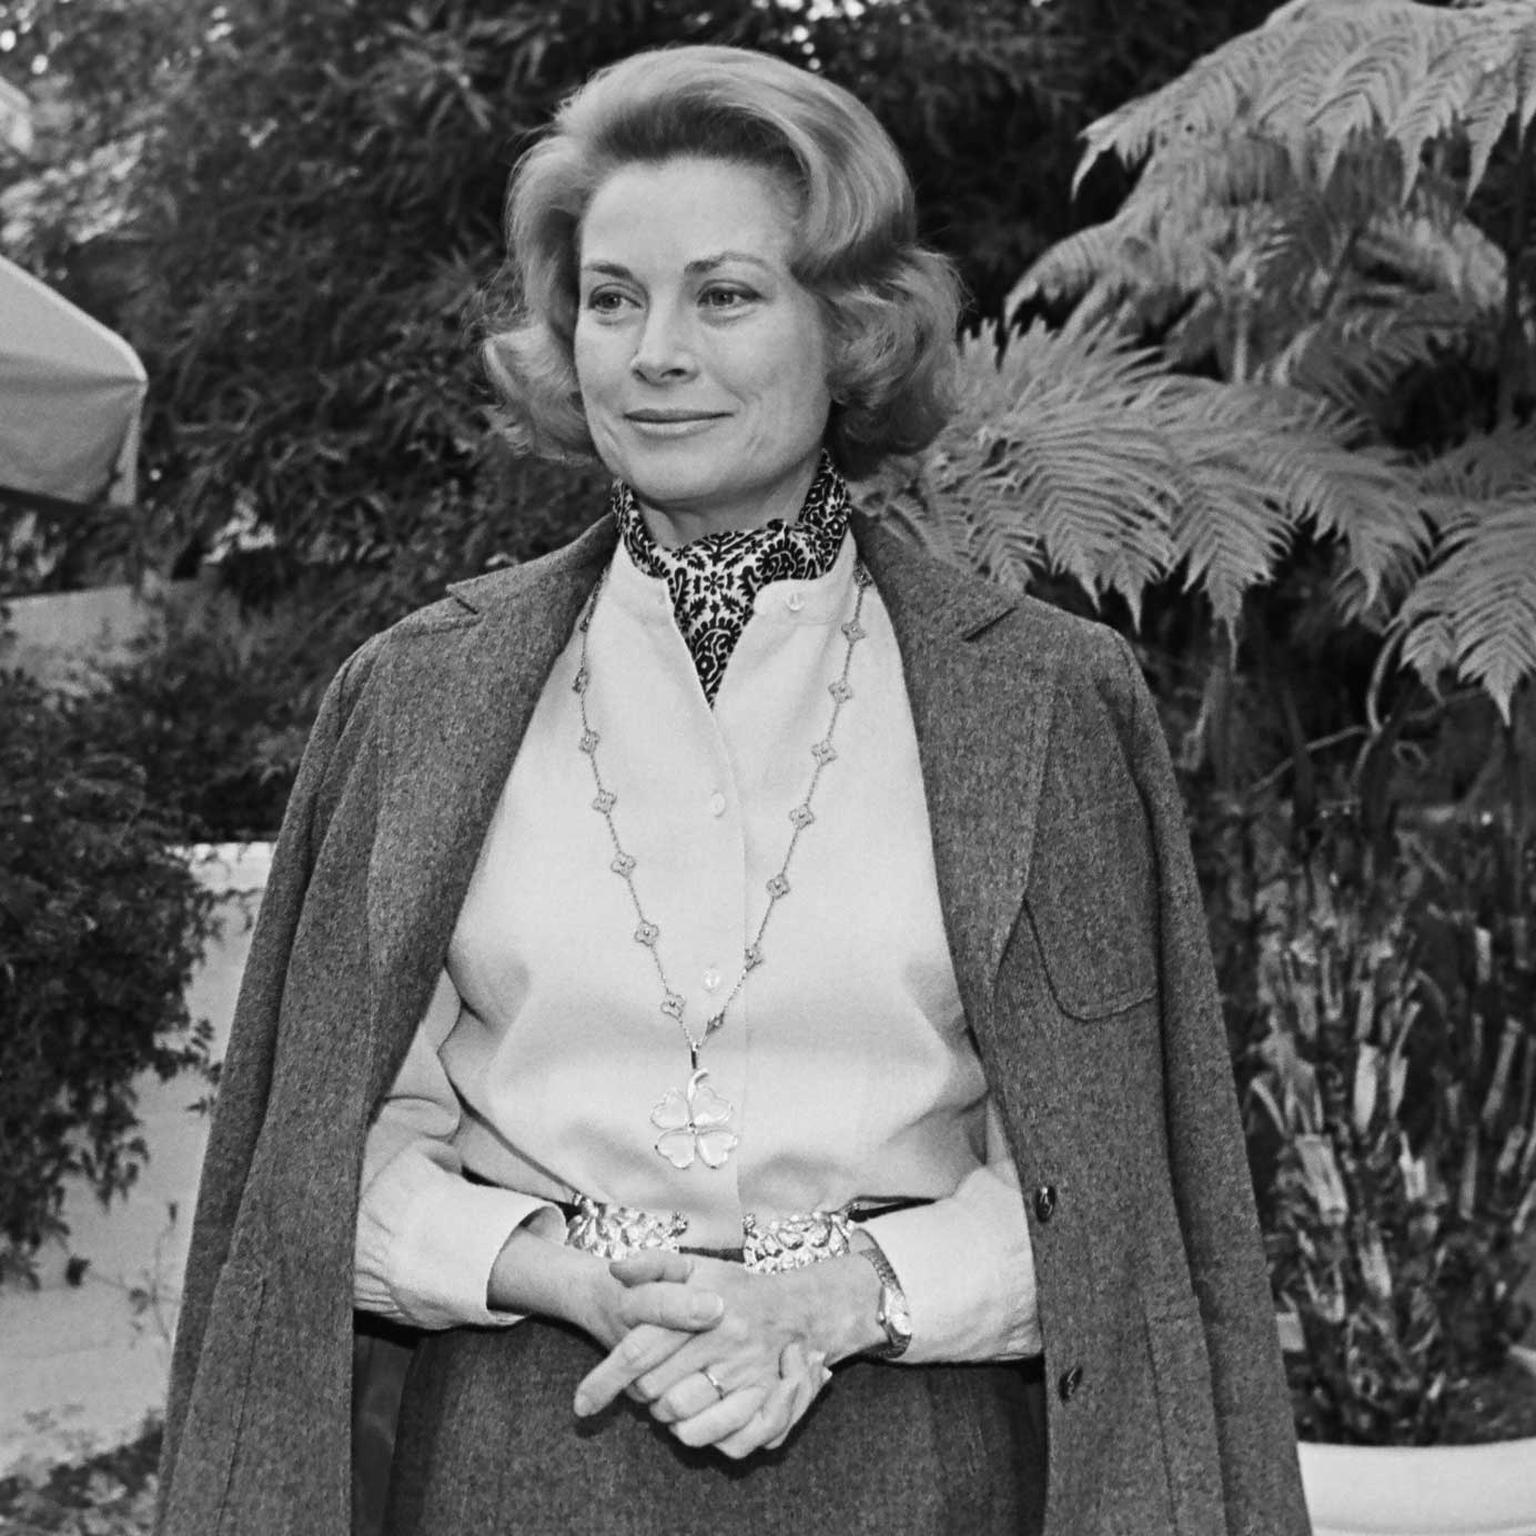 Grace Kelly wearing Van Cleef Arpels Alhambra necklace with large four leaf clover